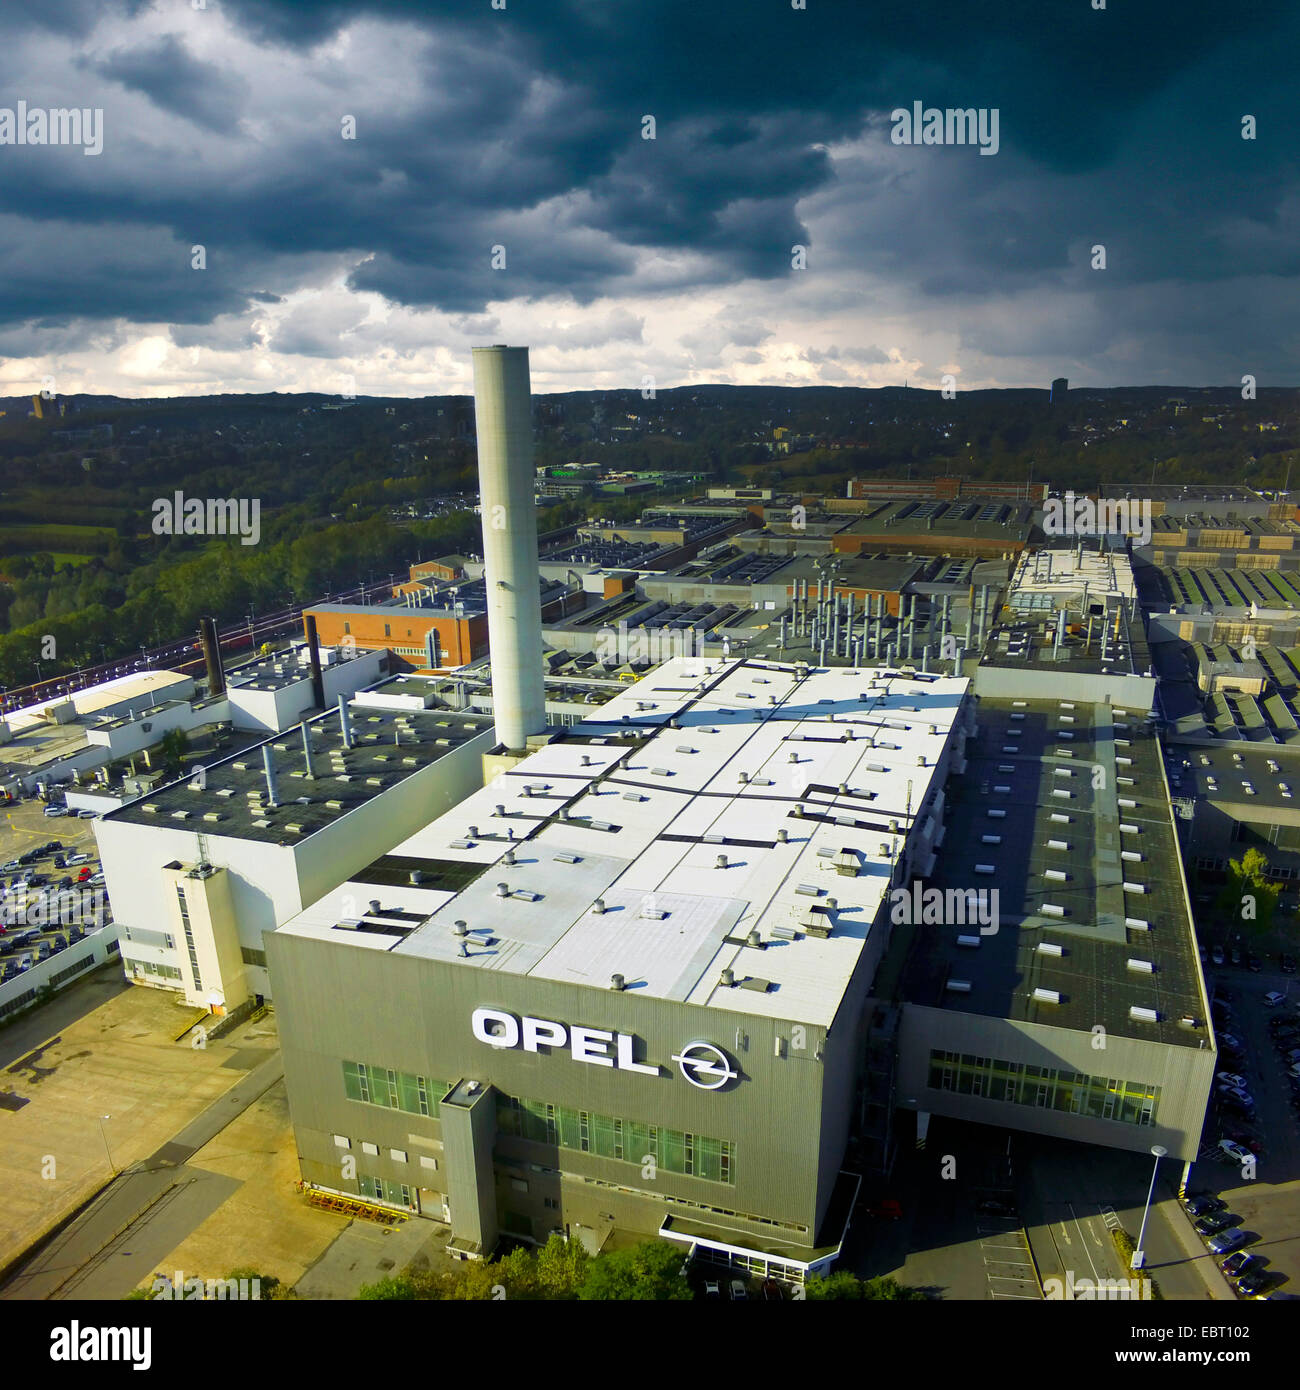 dark clouds over Opel's manufacturing plant in Bochum, Germany, North Rhine-Westphalia, Ruhr Area, Bochum - Stock Image